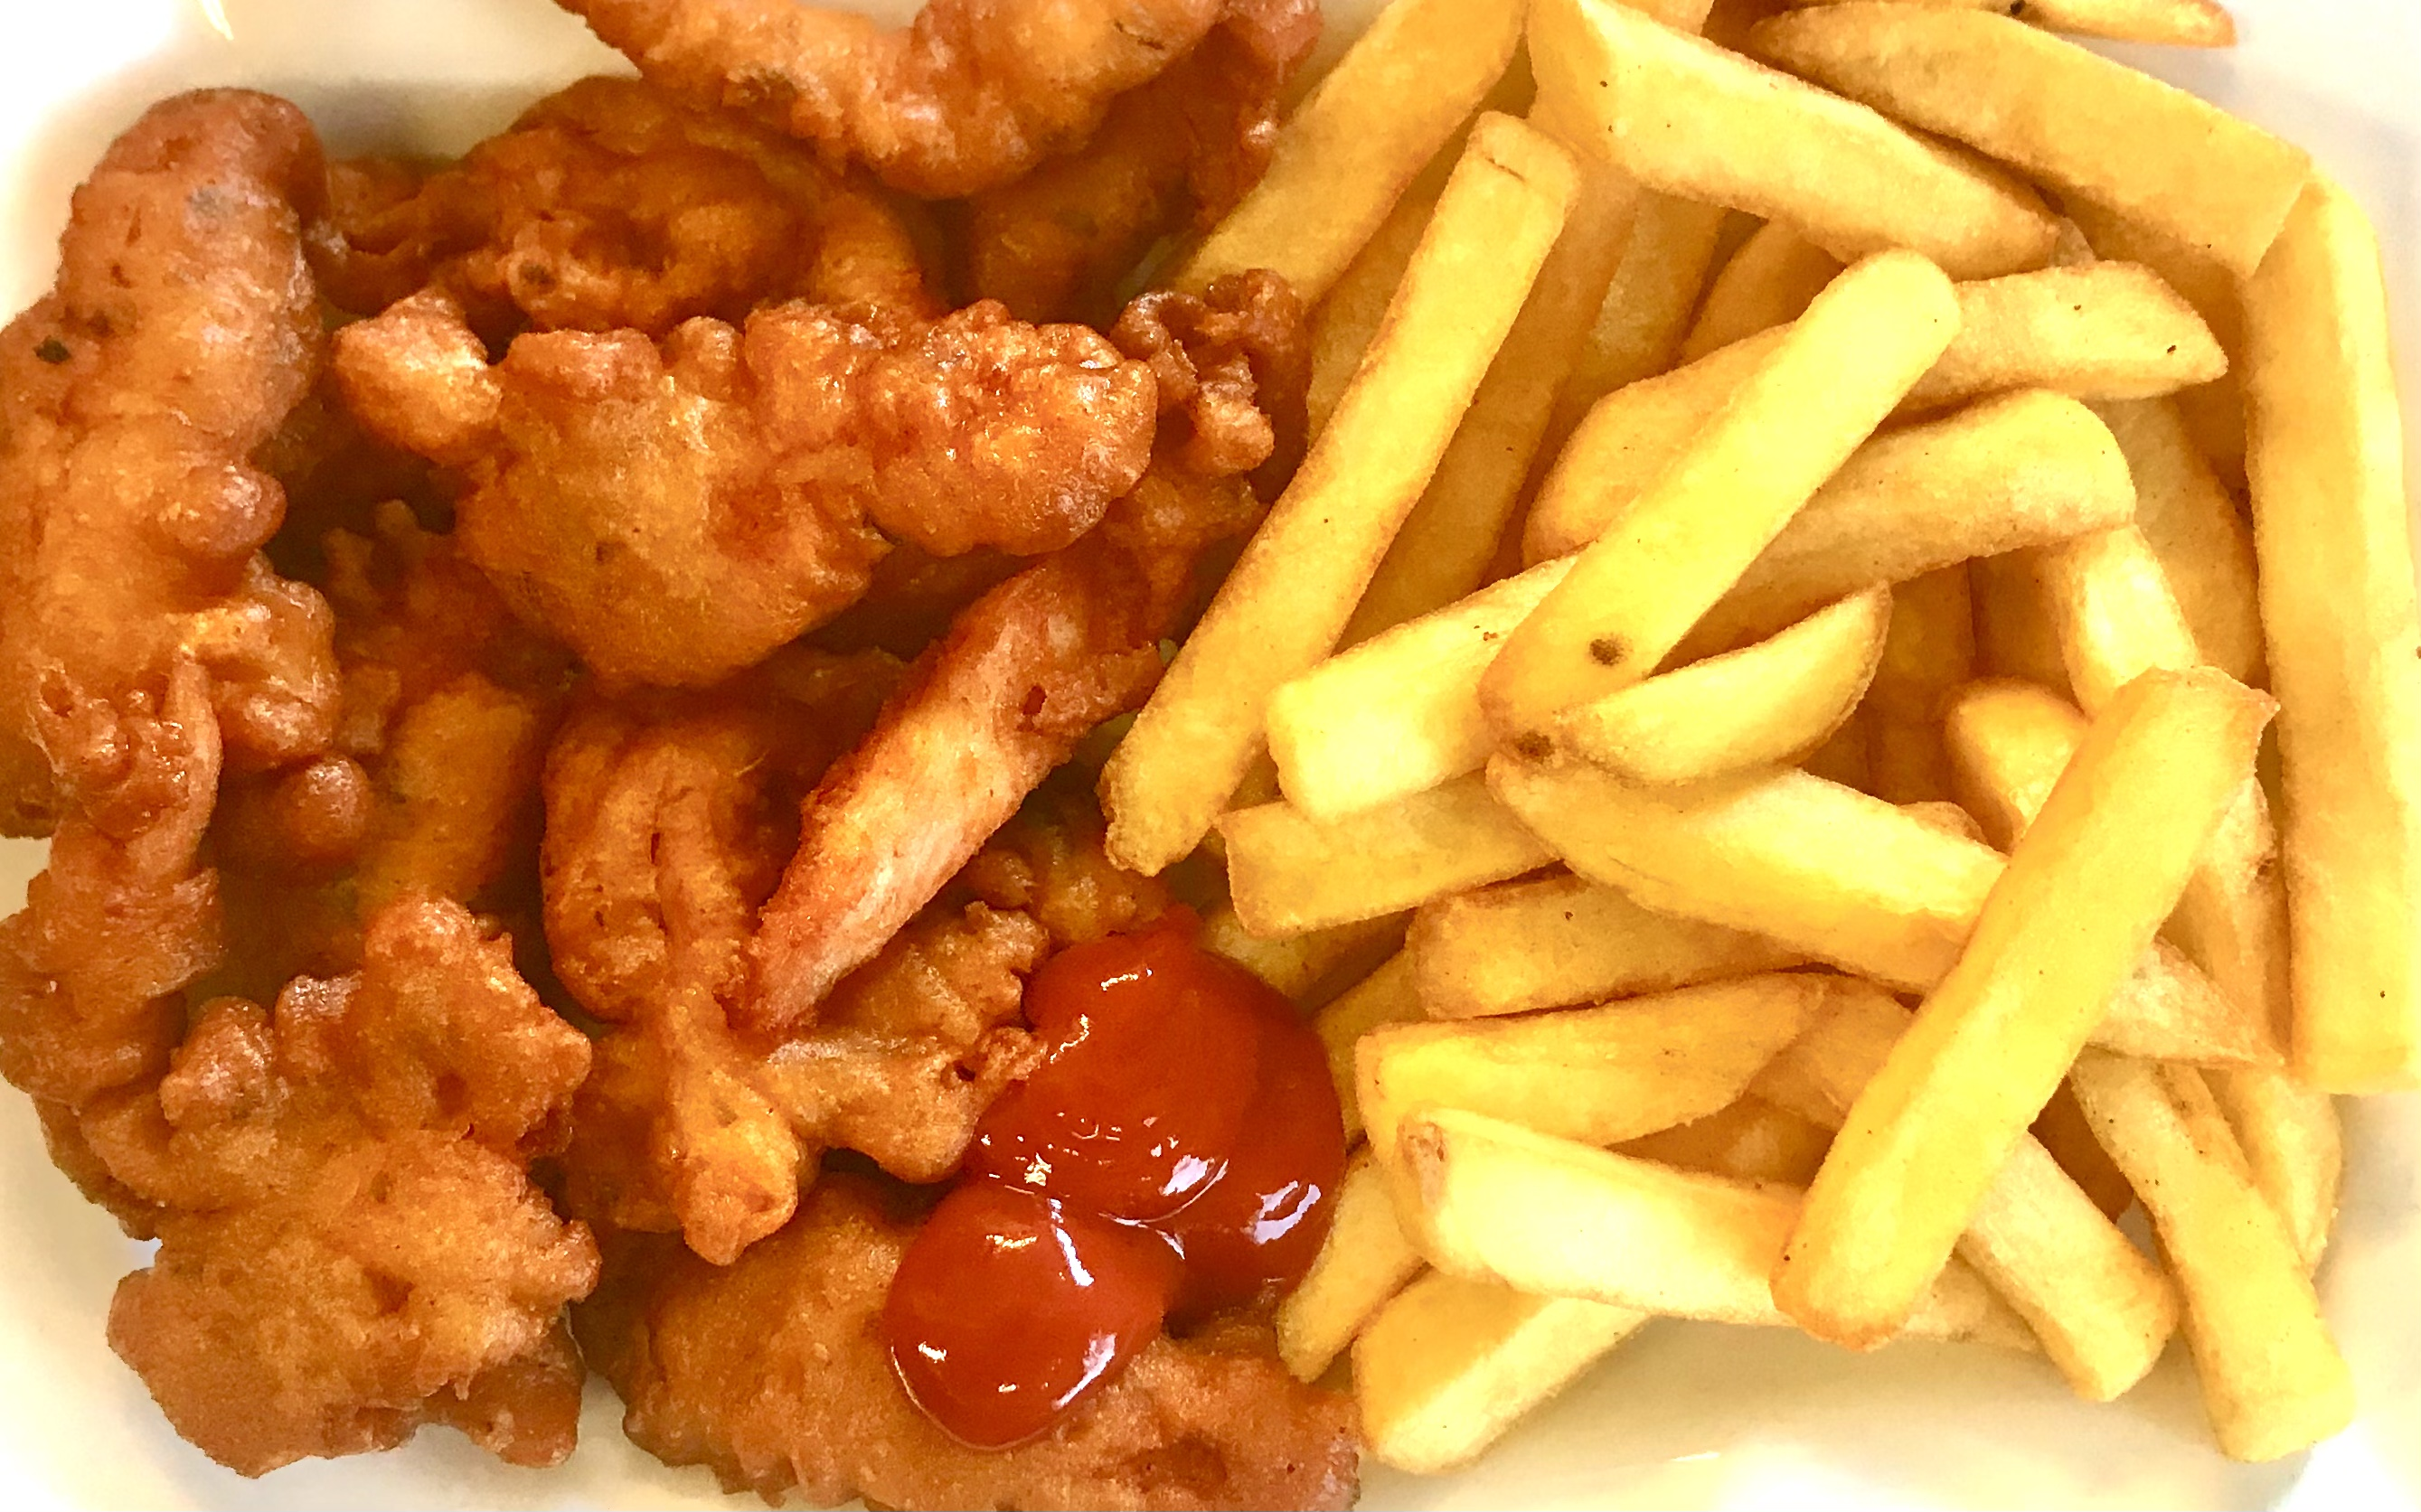 Plain Chicken And Chips